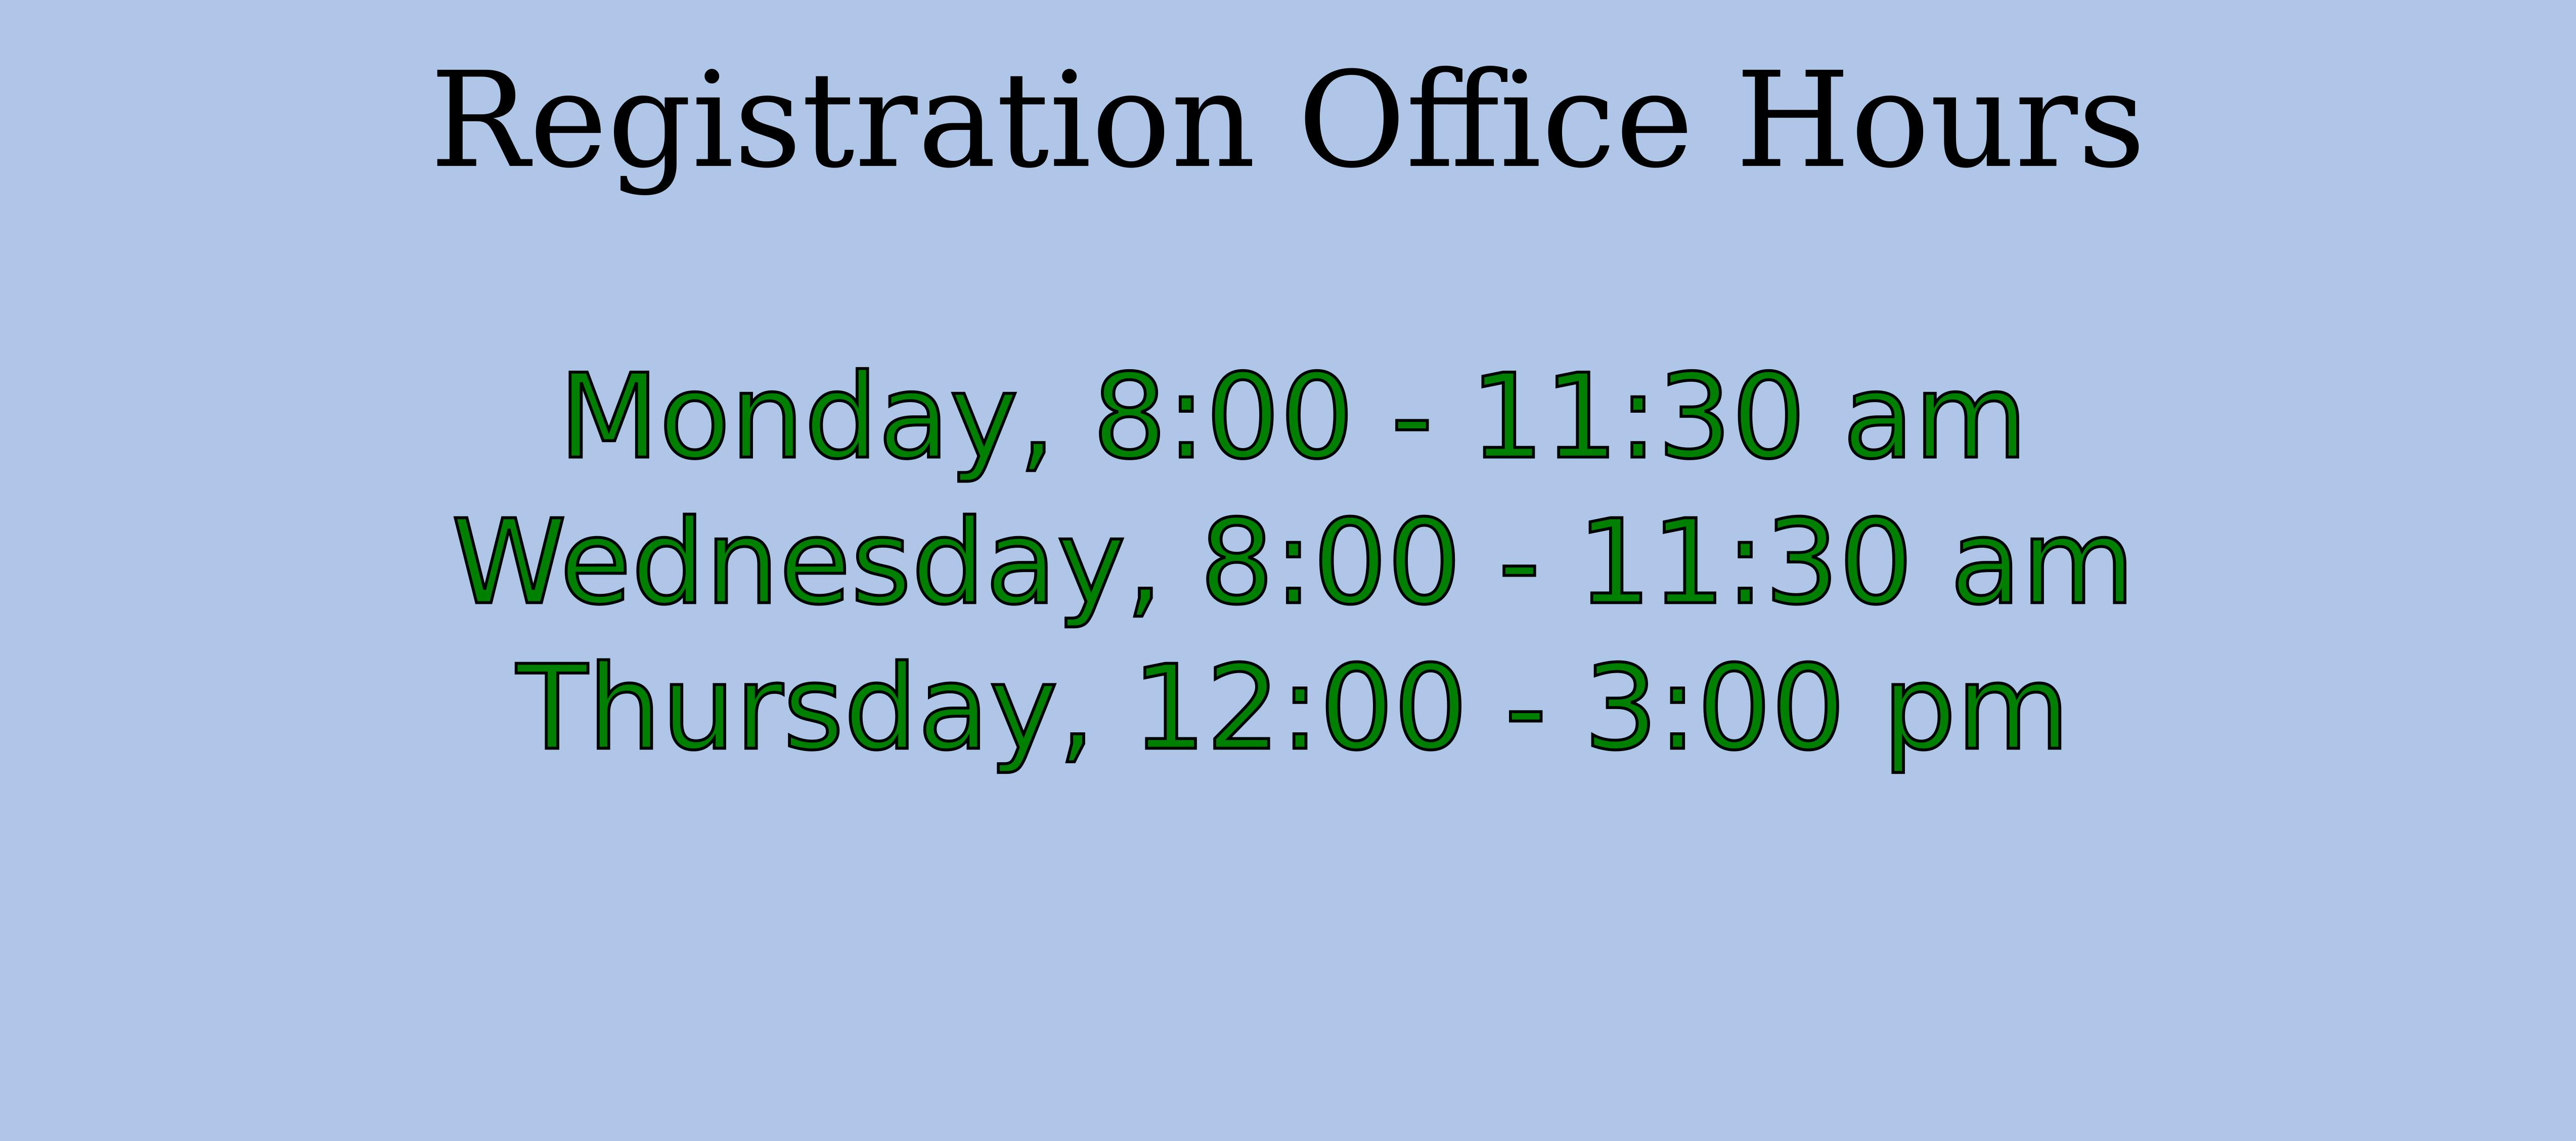 Registration Office Hours